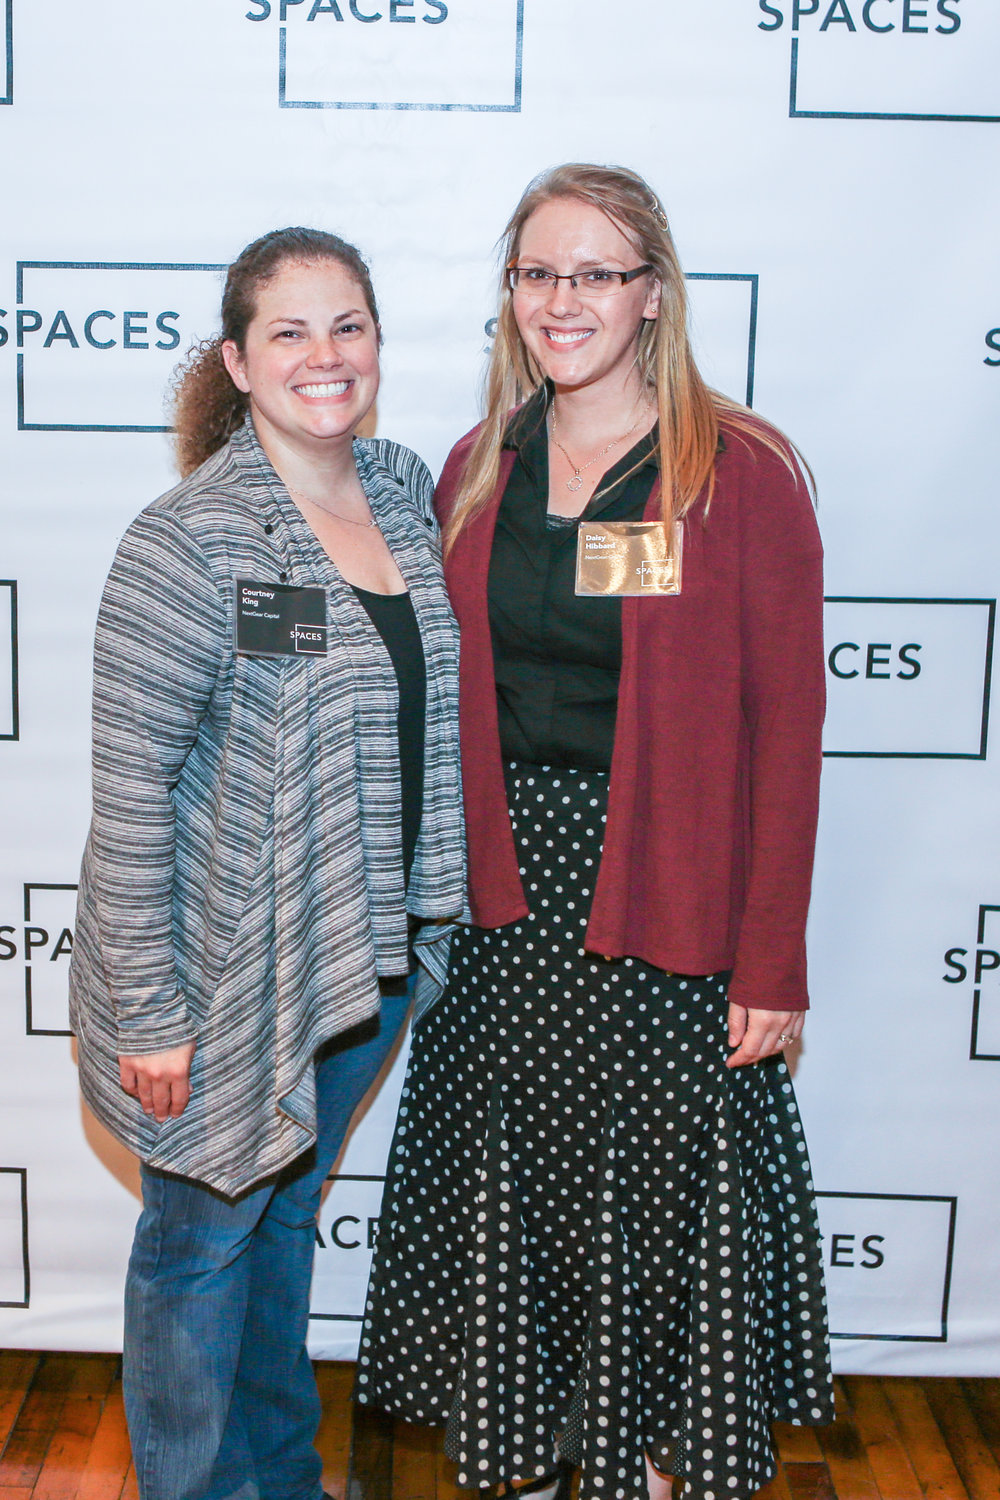 Spaces Event-1025.jpg